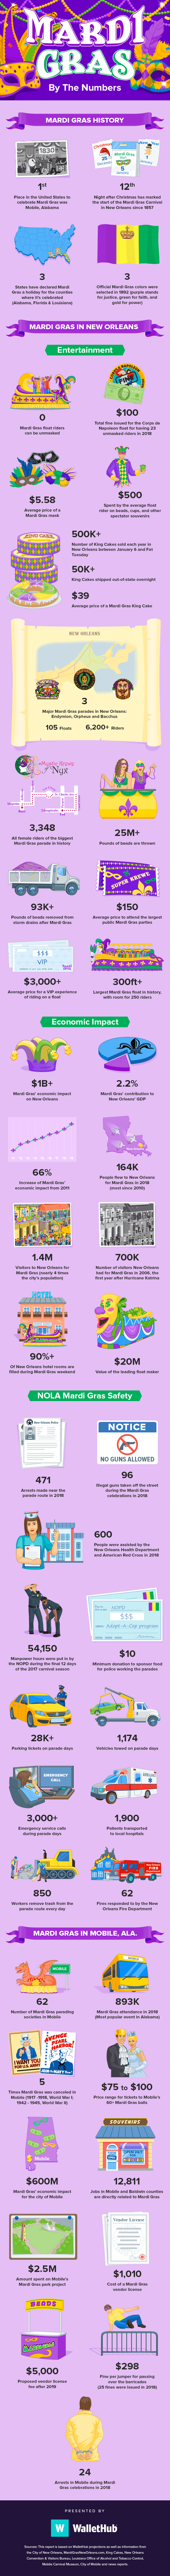 2019-mardi-gras-by-the-numbers-v4